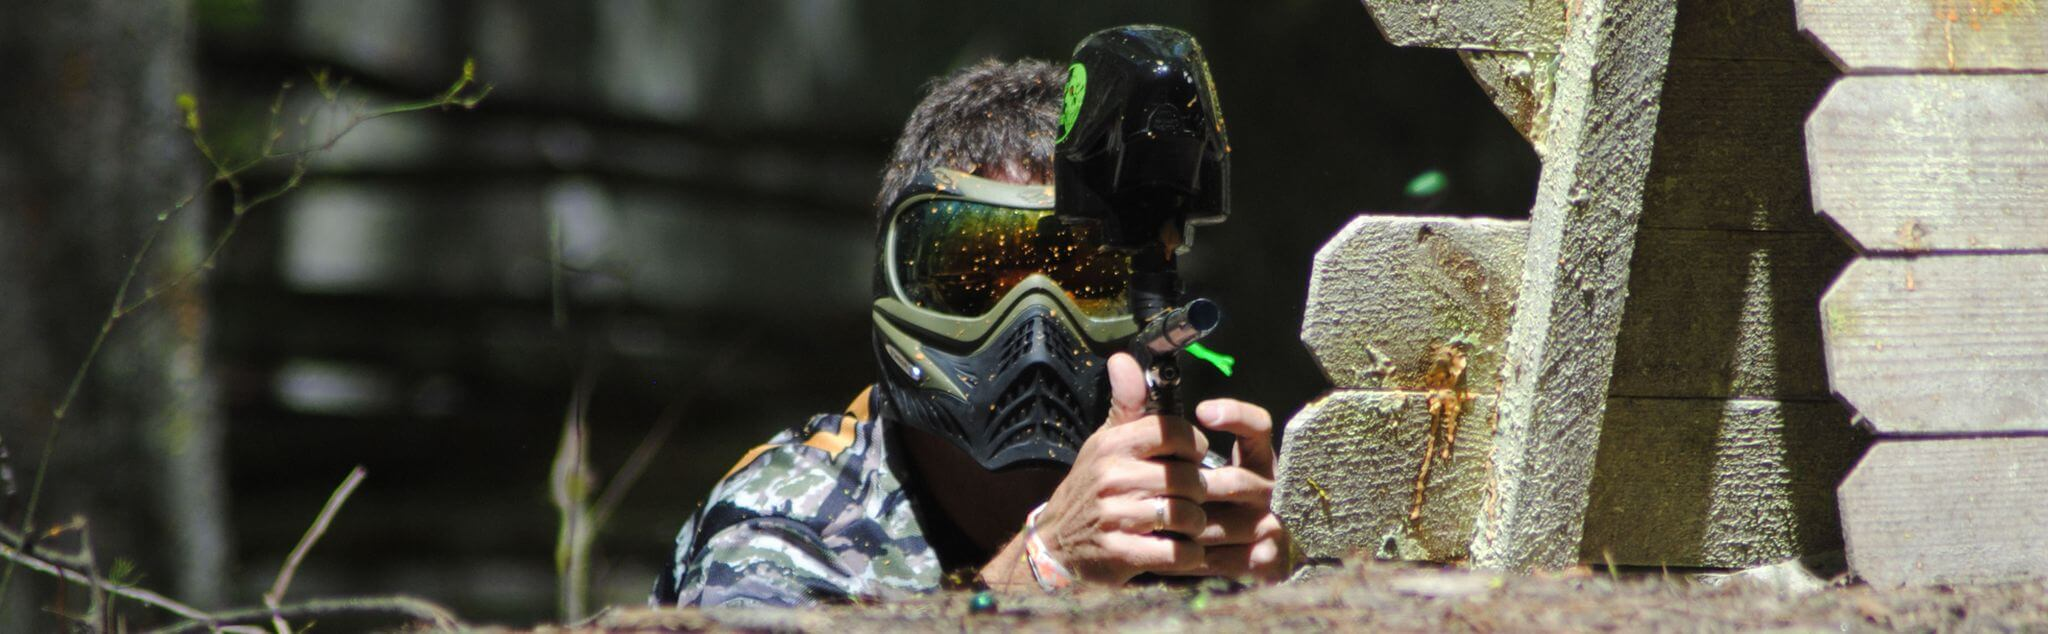 Paintball a Trieste